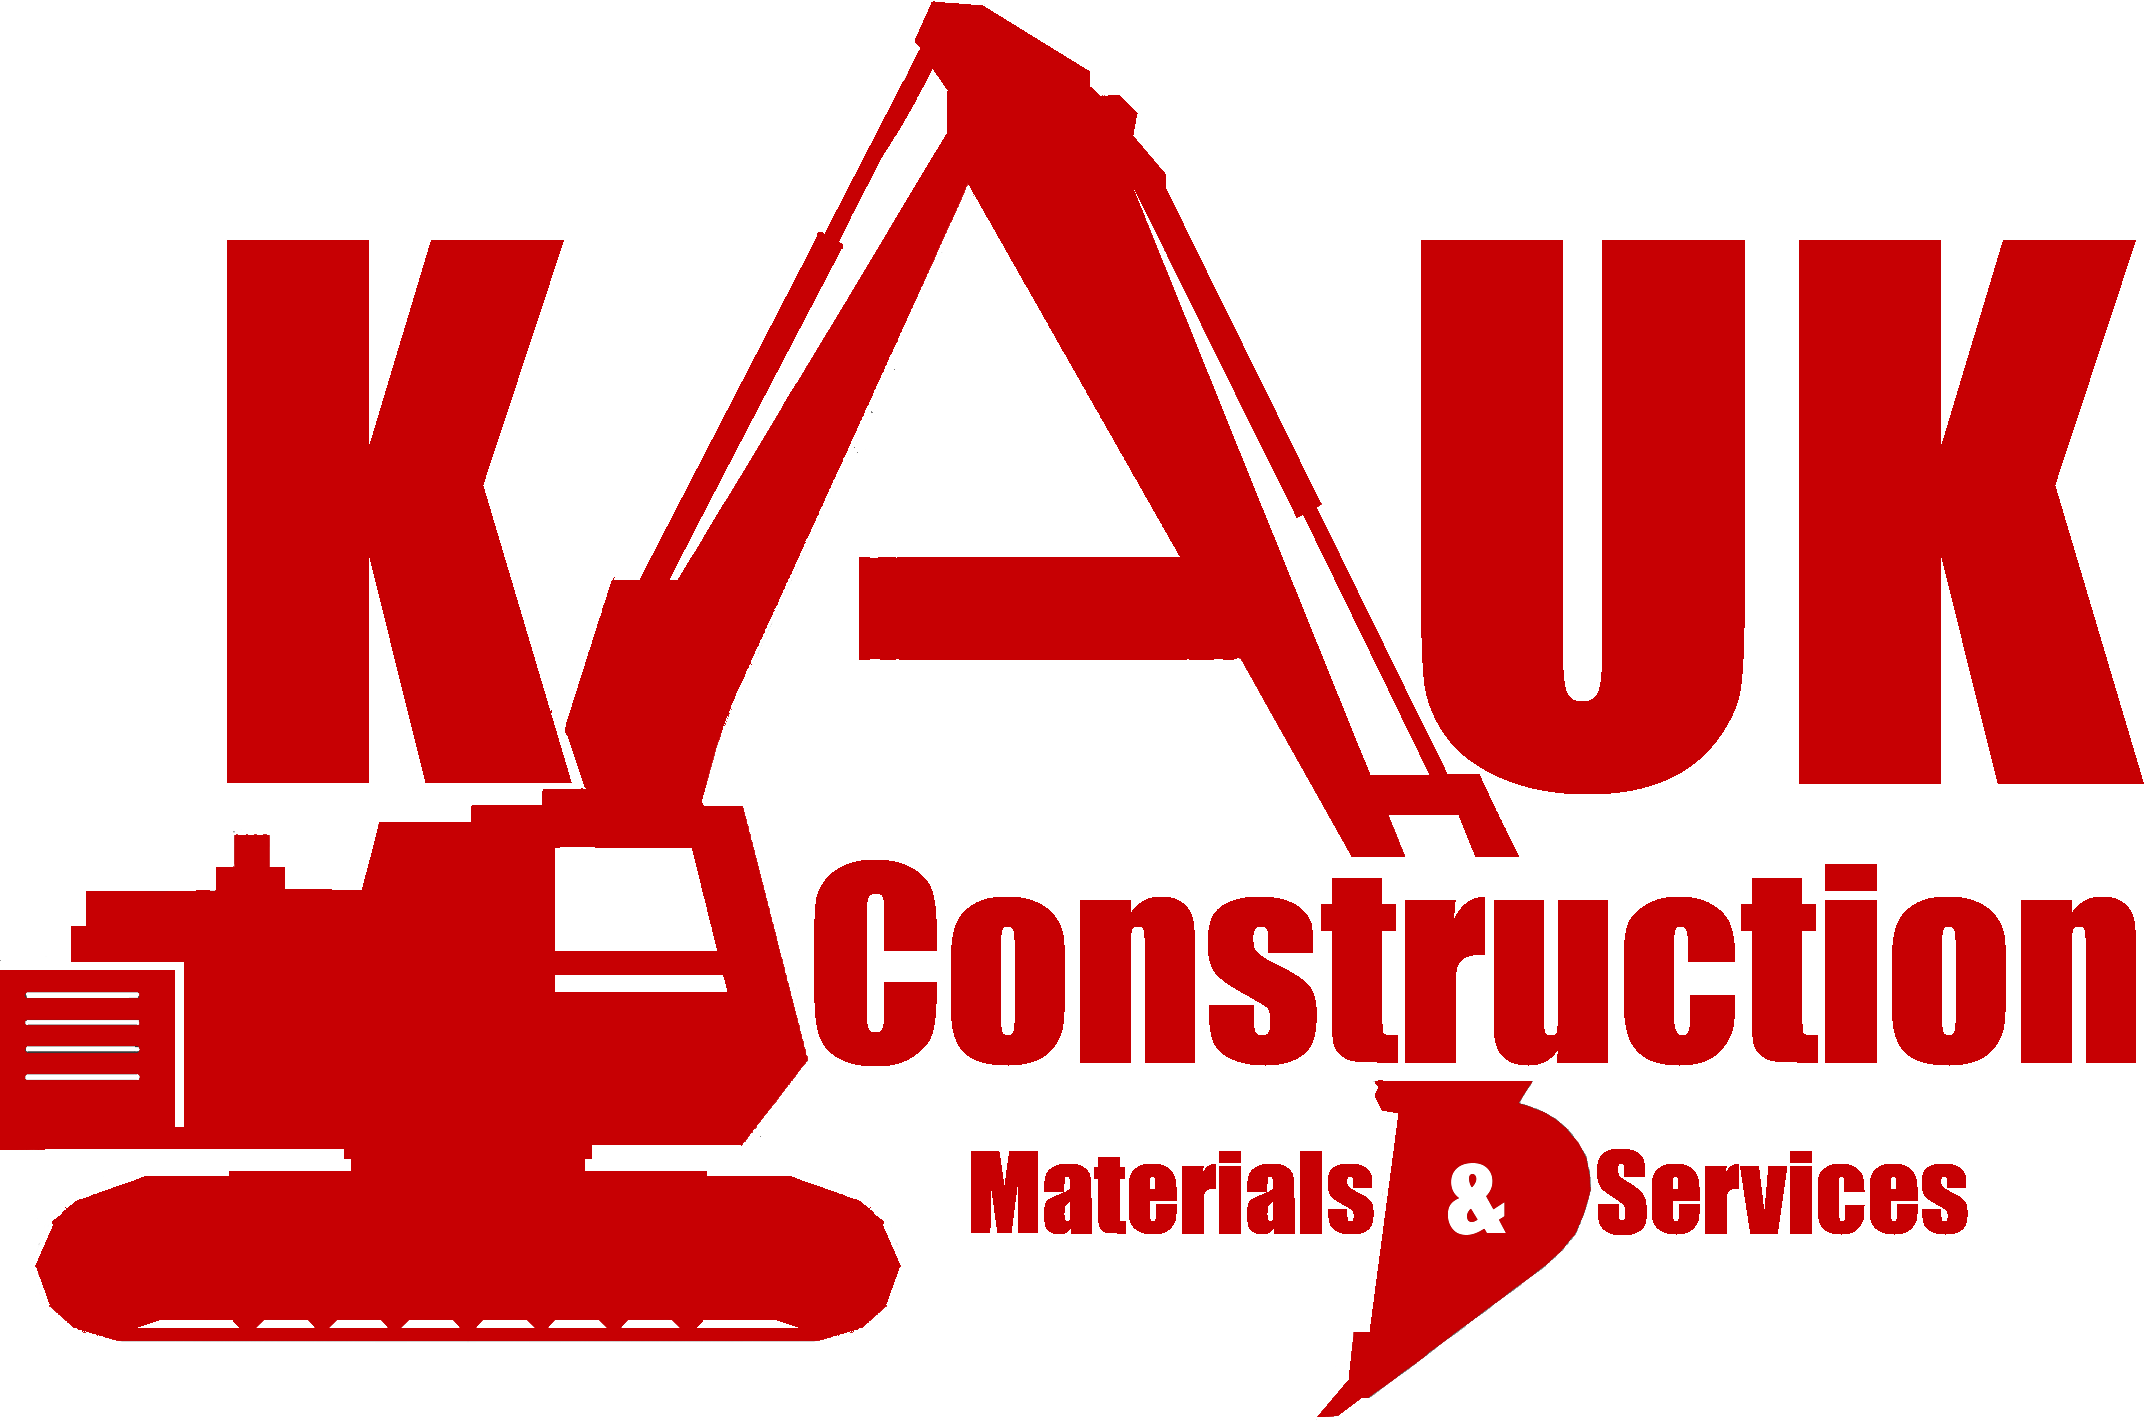 KAUK_CONSTRUCTION_FINAL_UPDATE